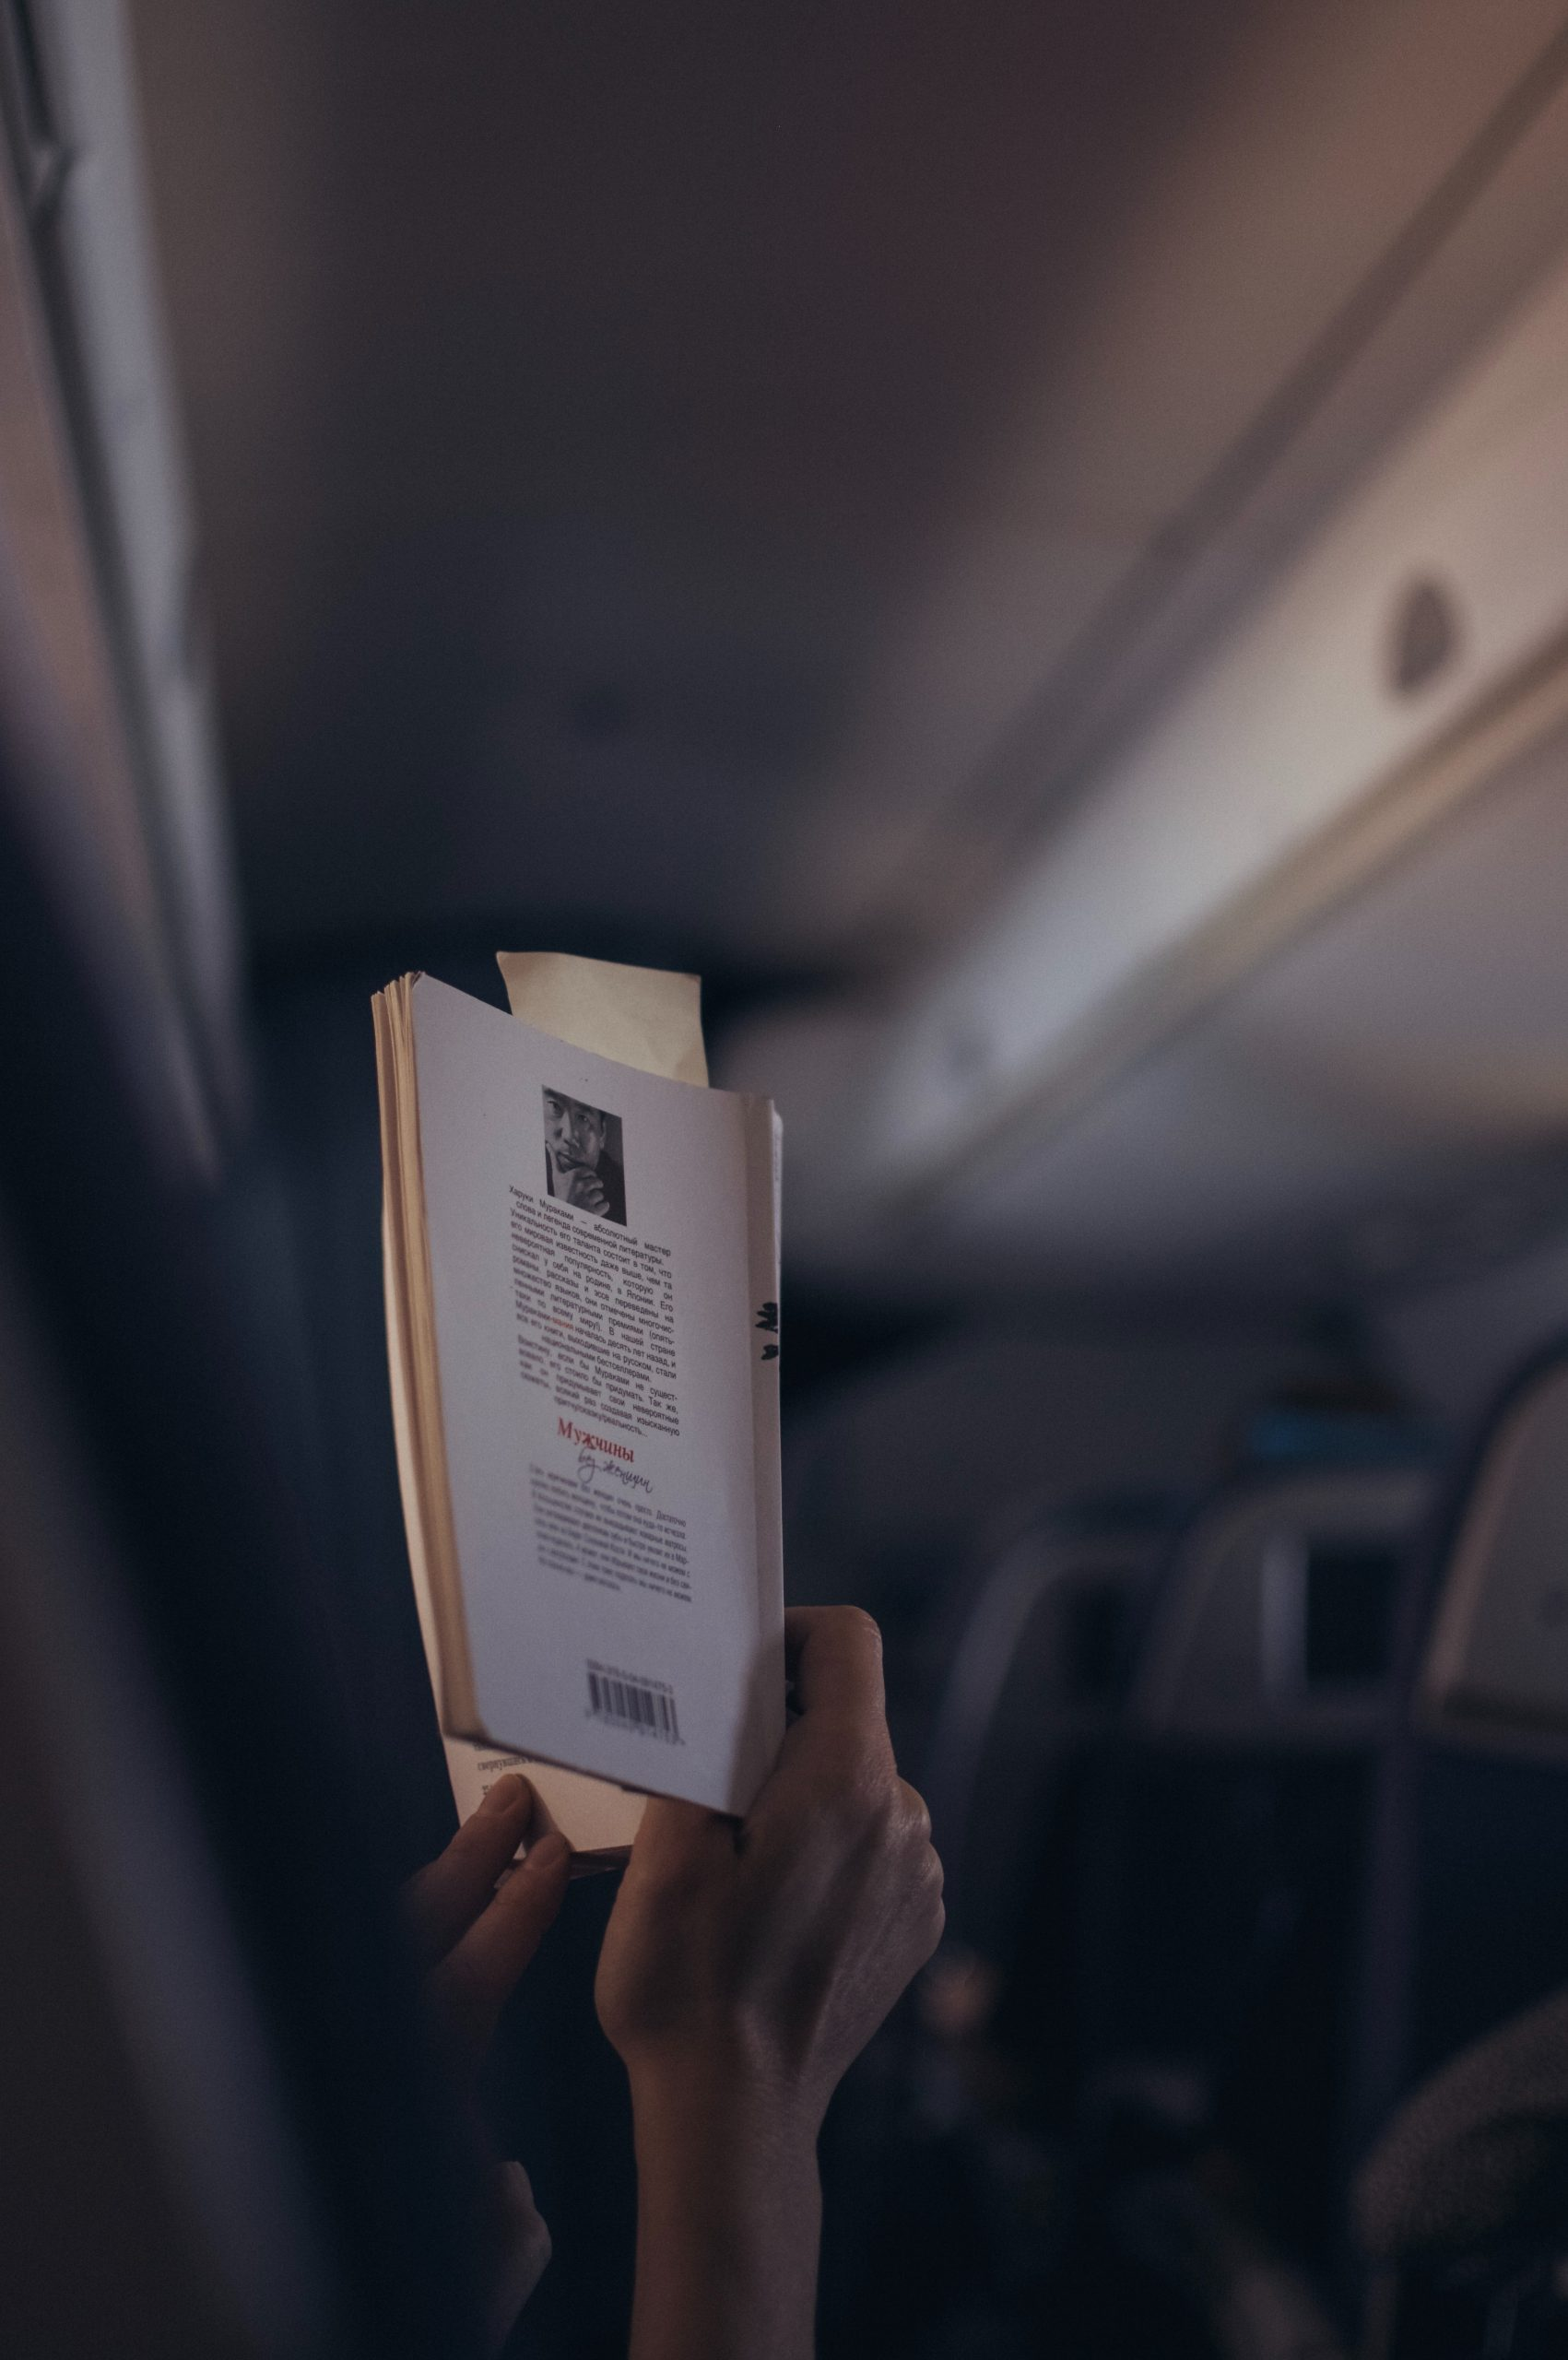 Reading a book on the plane